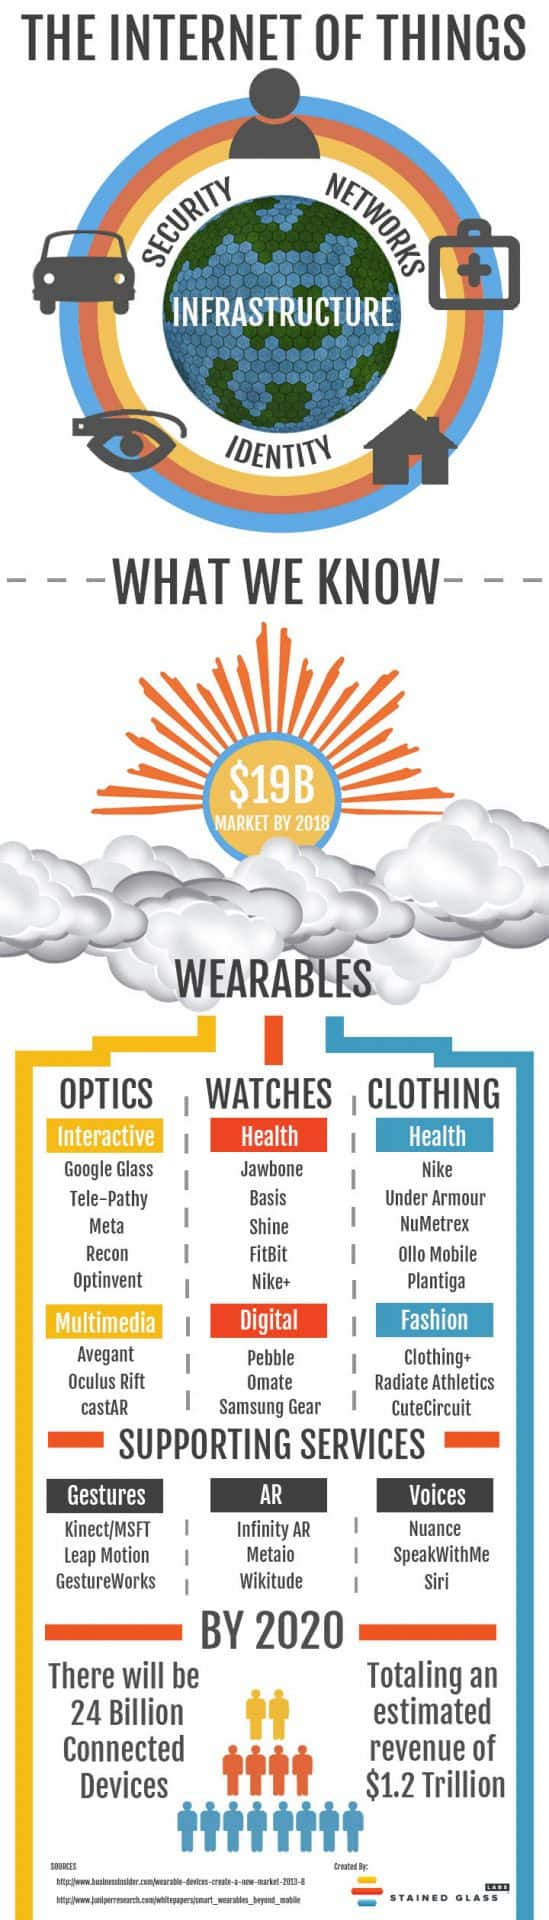 Wearbles-Infographic-Stained-Glass-Labs-20131